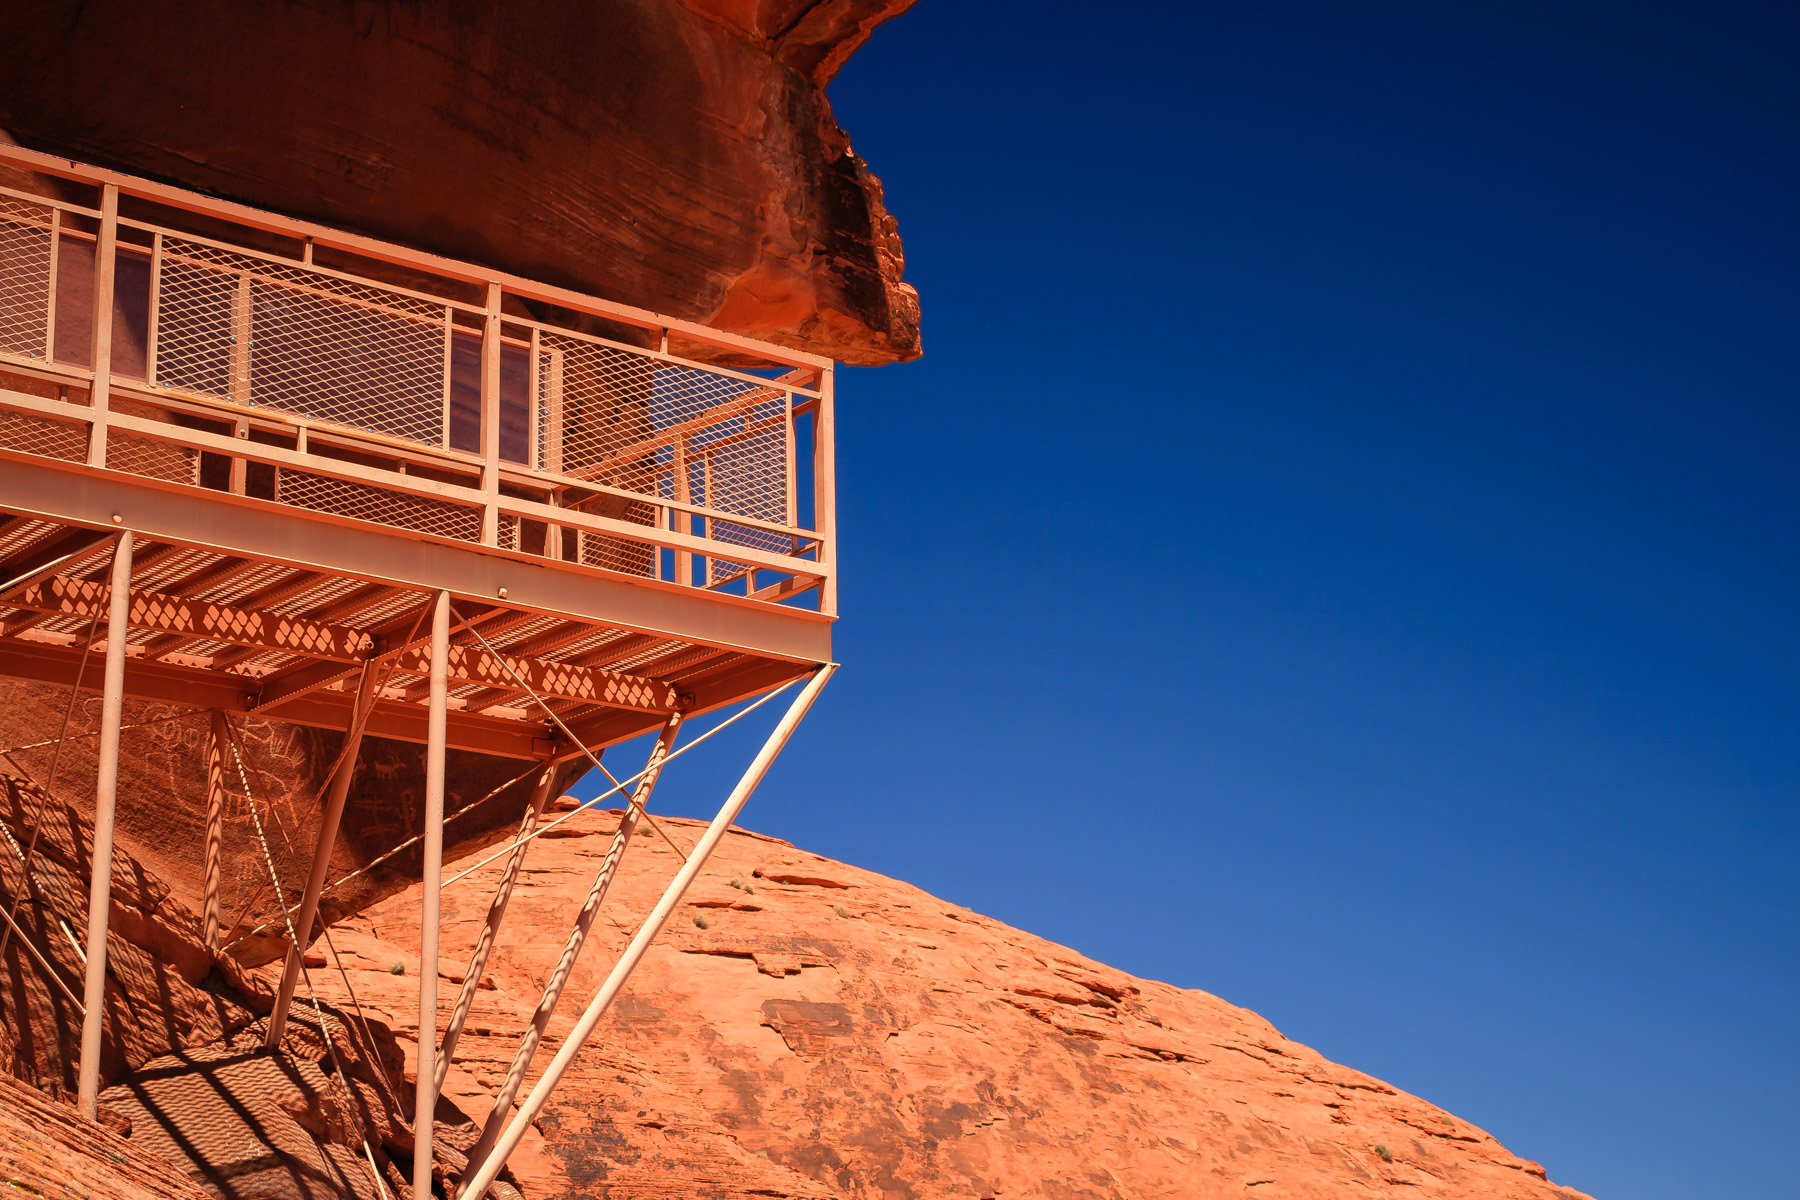 A viewing platform at the Valley of Fire's Atlatl Rock to facilitate closer looks at ancient petroglyphs (rock drawings).  In this shot, you can see a few directly underneath the platform behind its legs.